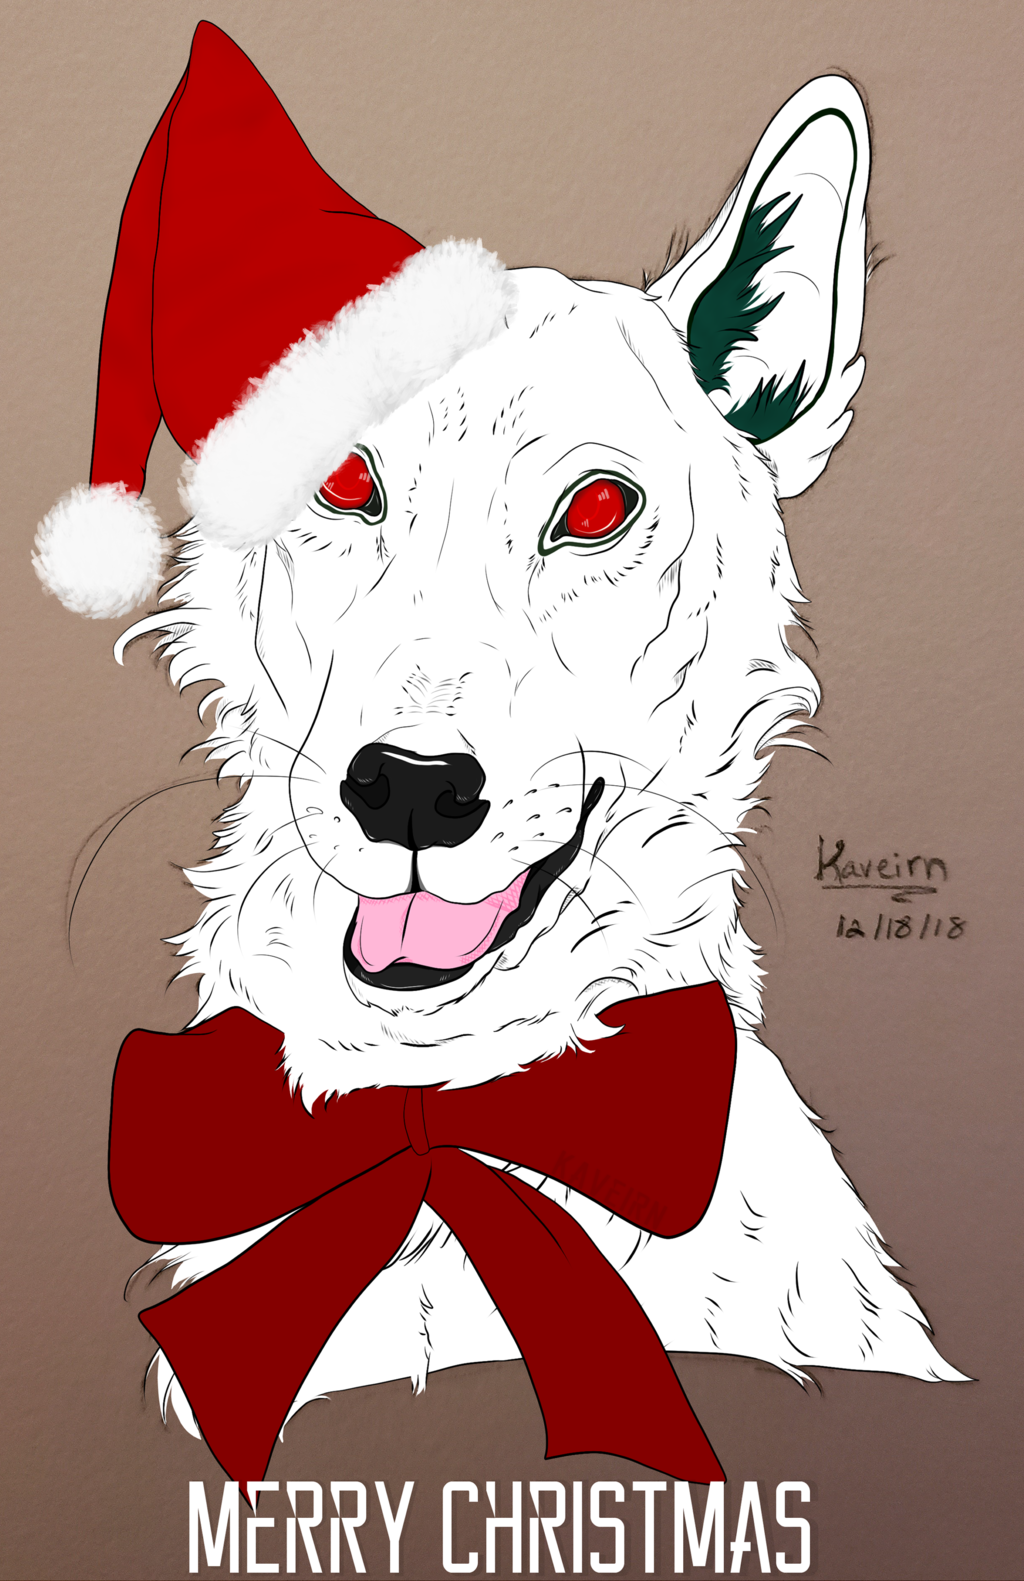 Most recent image: Ghost's Christmas Greeting